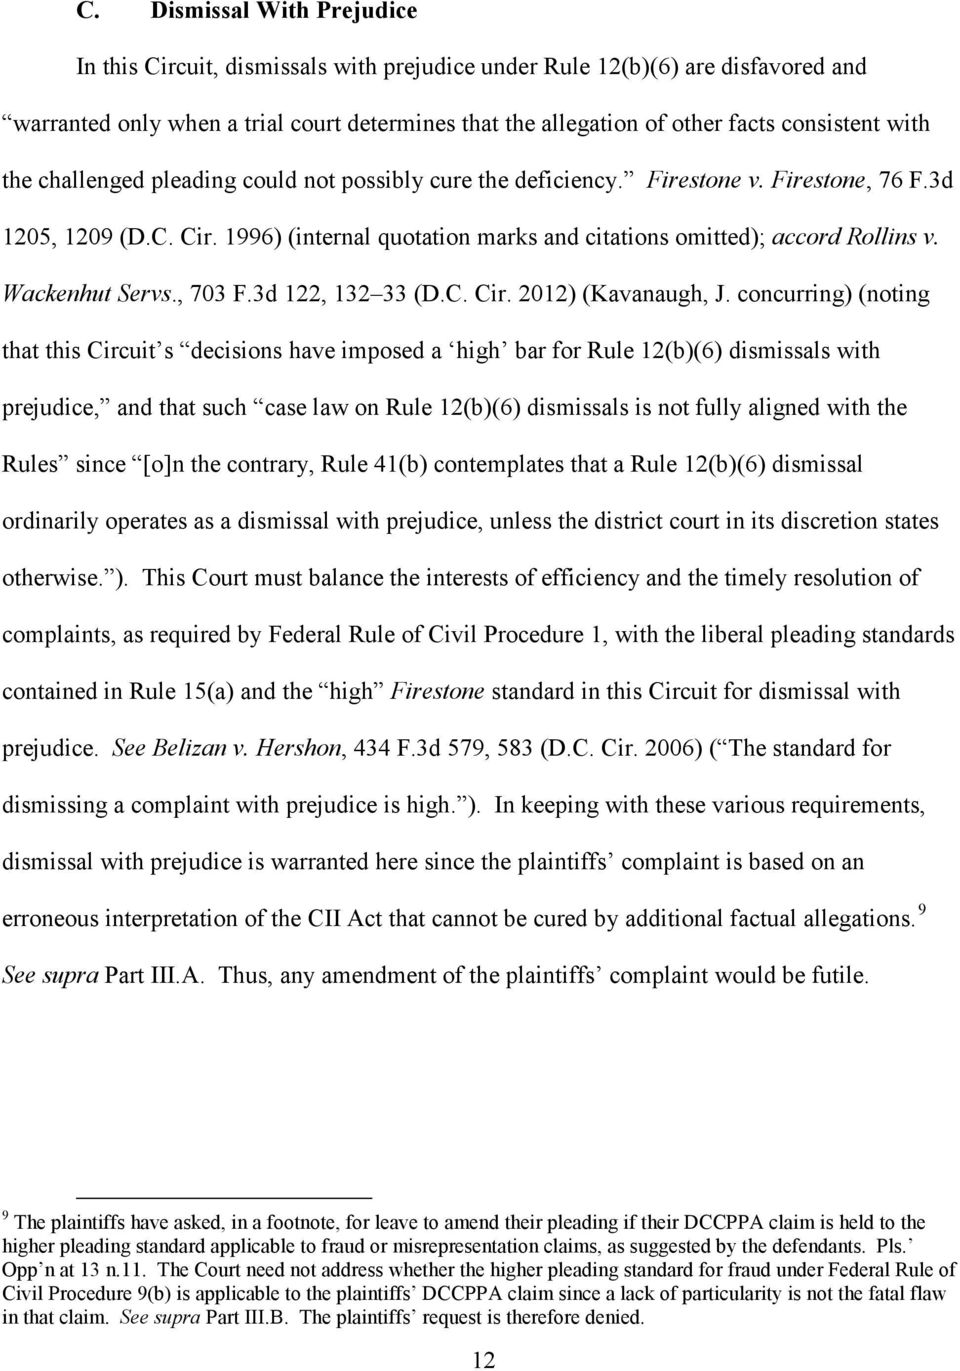 with the challenged pleading could not possibly cure the deficiency. Firestone v. Firestone, 76 F.3d 1205, 1209 (D.C. Cir. 1996) (internal quotation marks and citations omitted); accord Rollins v.